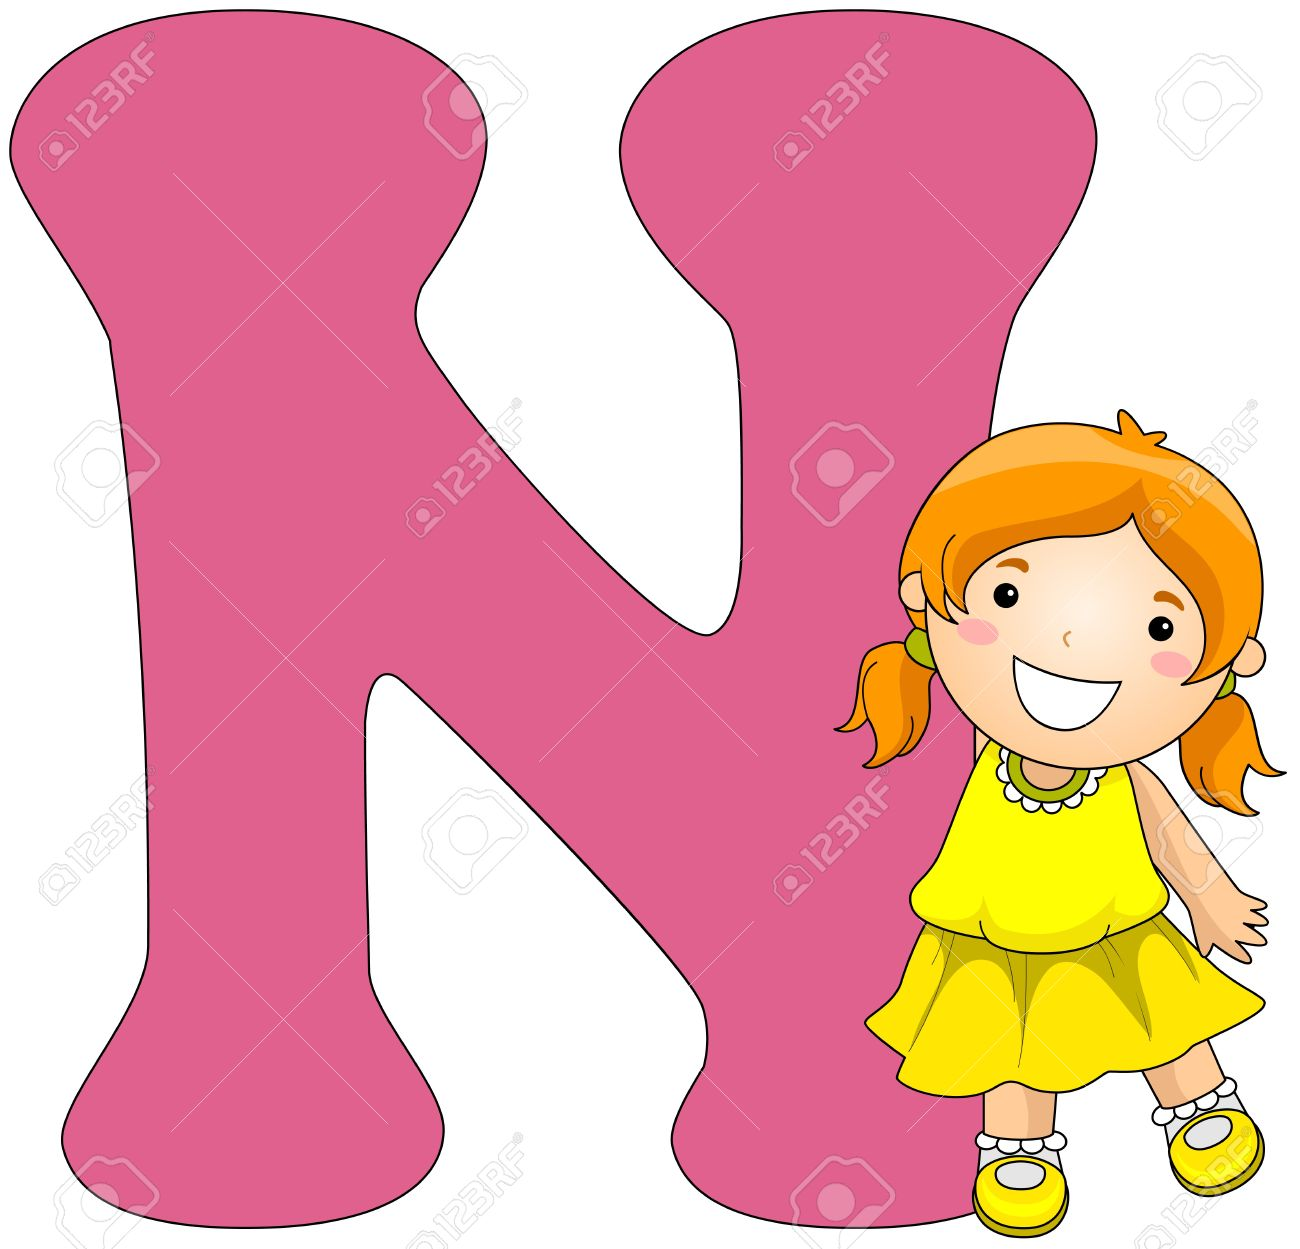 Illustration Of A Girl Posing Beside A Letter N Stock Photo Picture